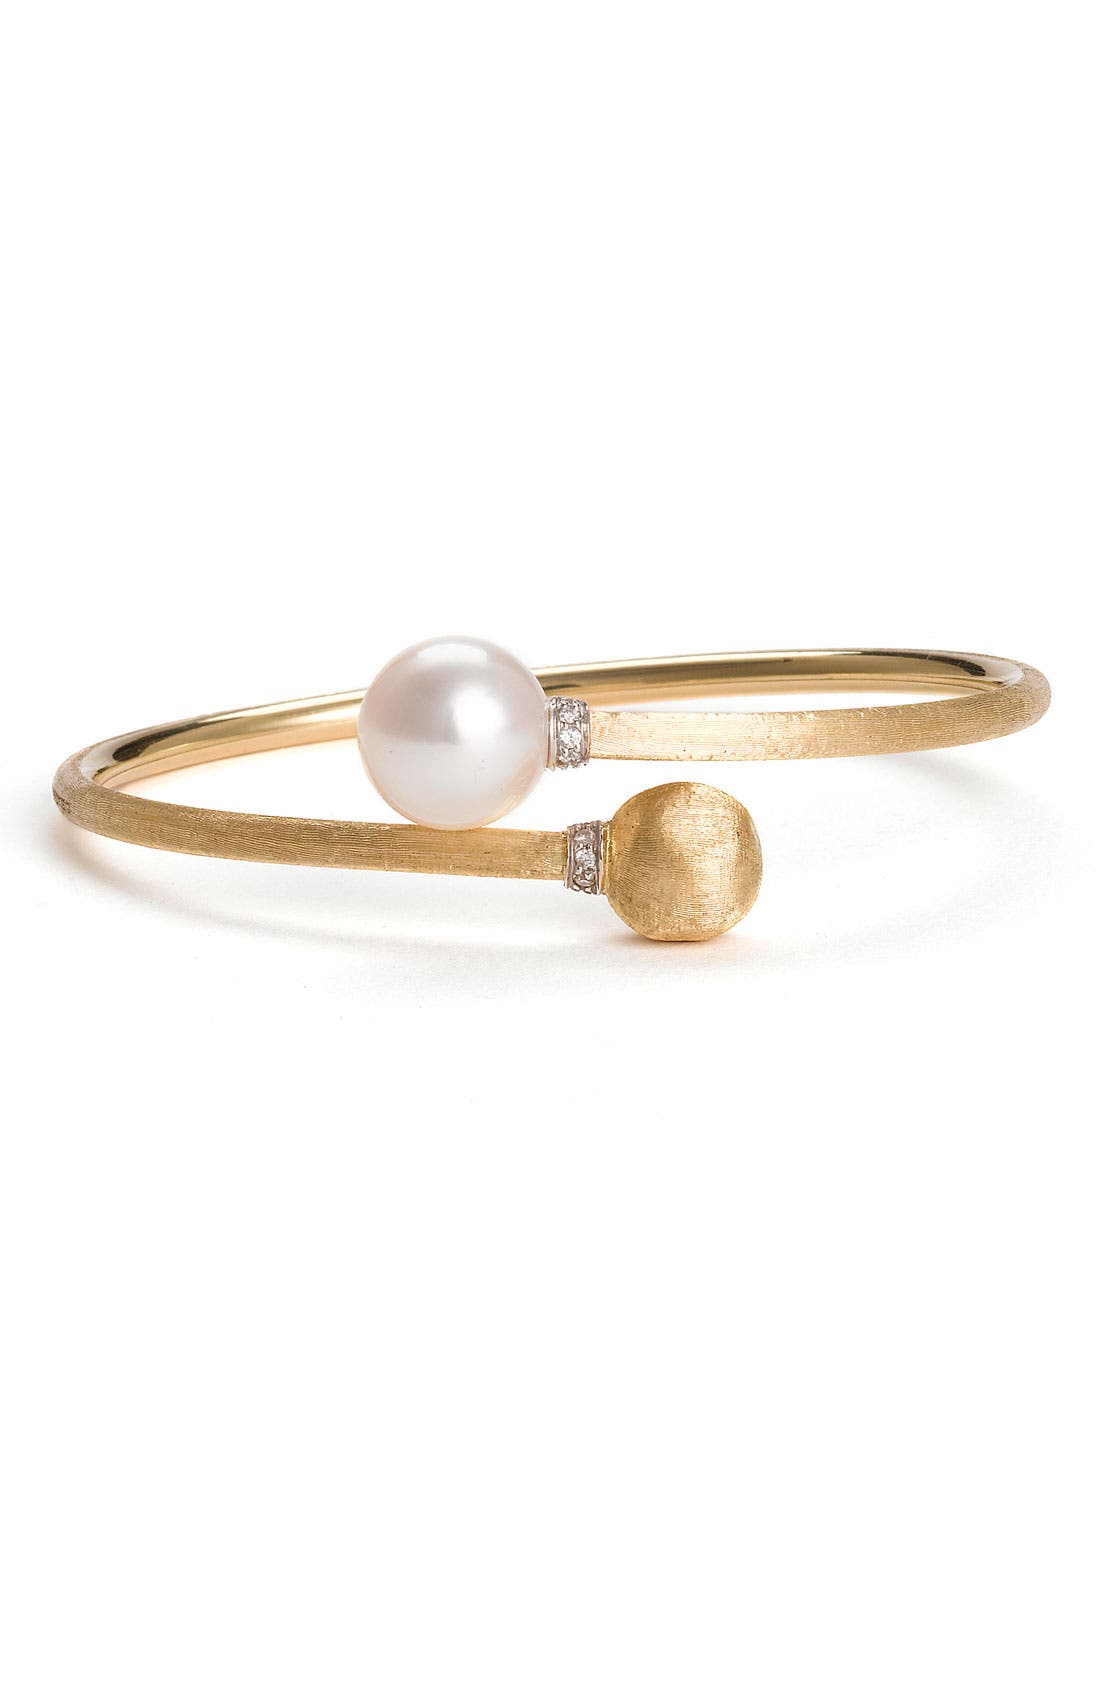 Main Image - Marco Bicego 'Africa' Pearl & Diamond Bangle